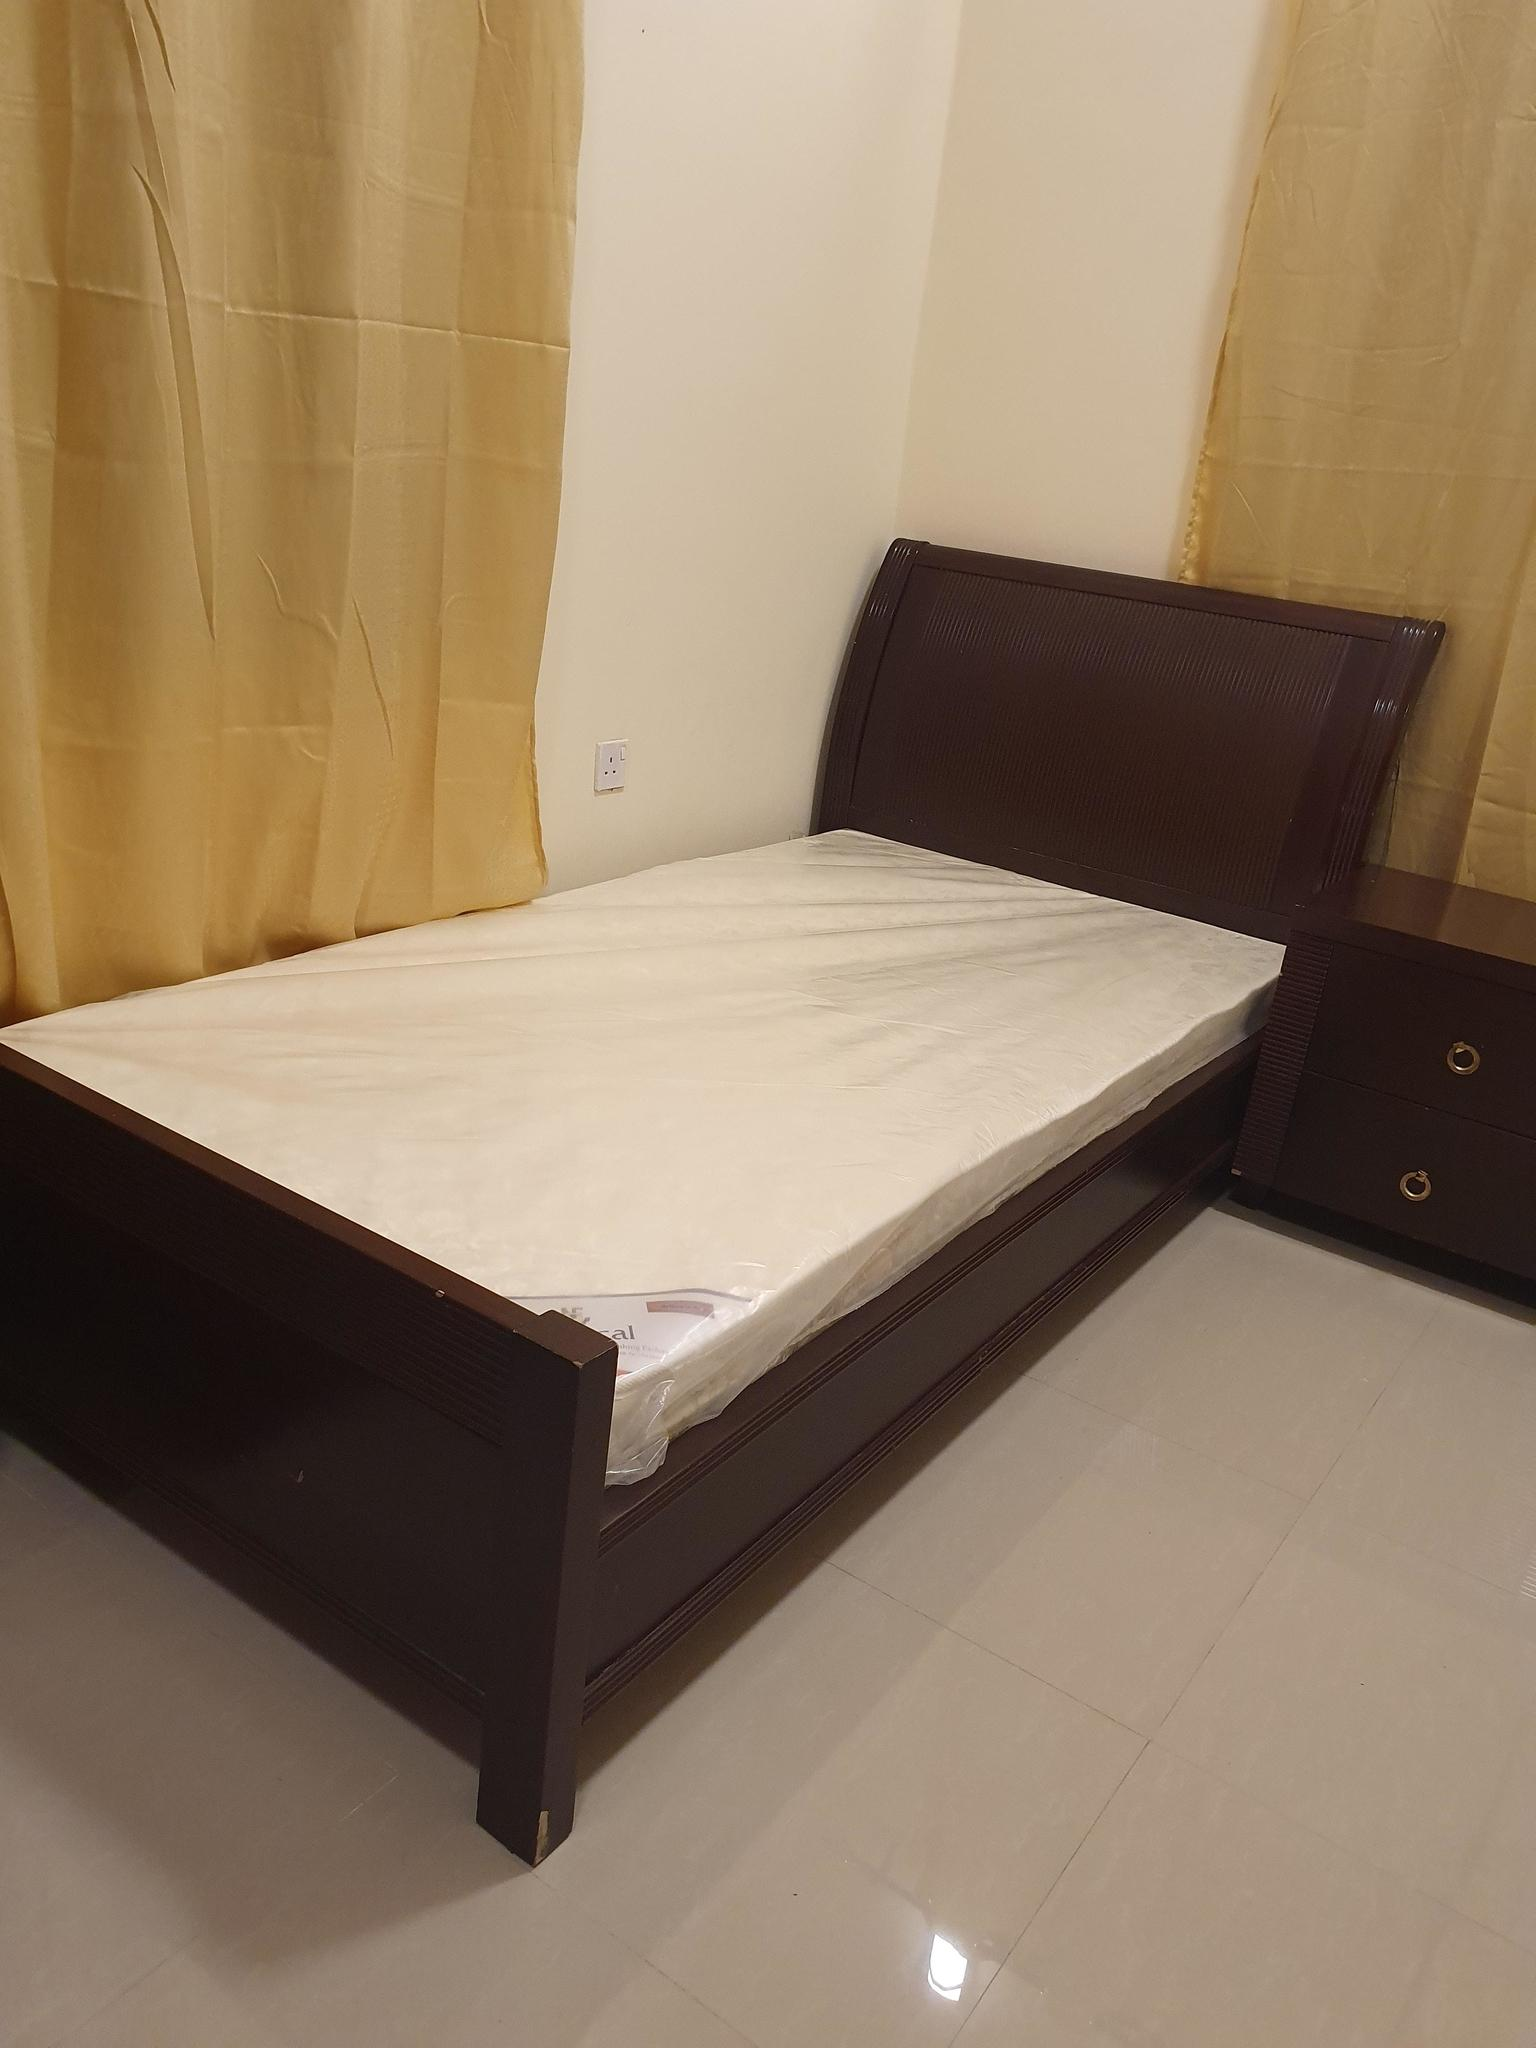 Want urgent this type of single bed Cot mattress